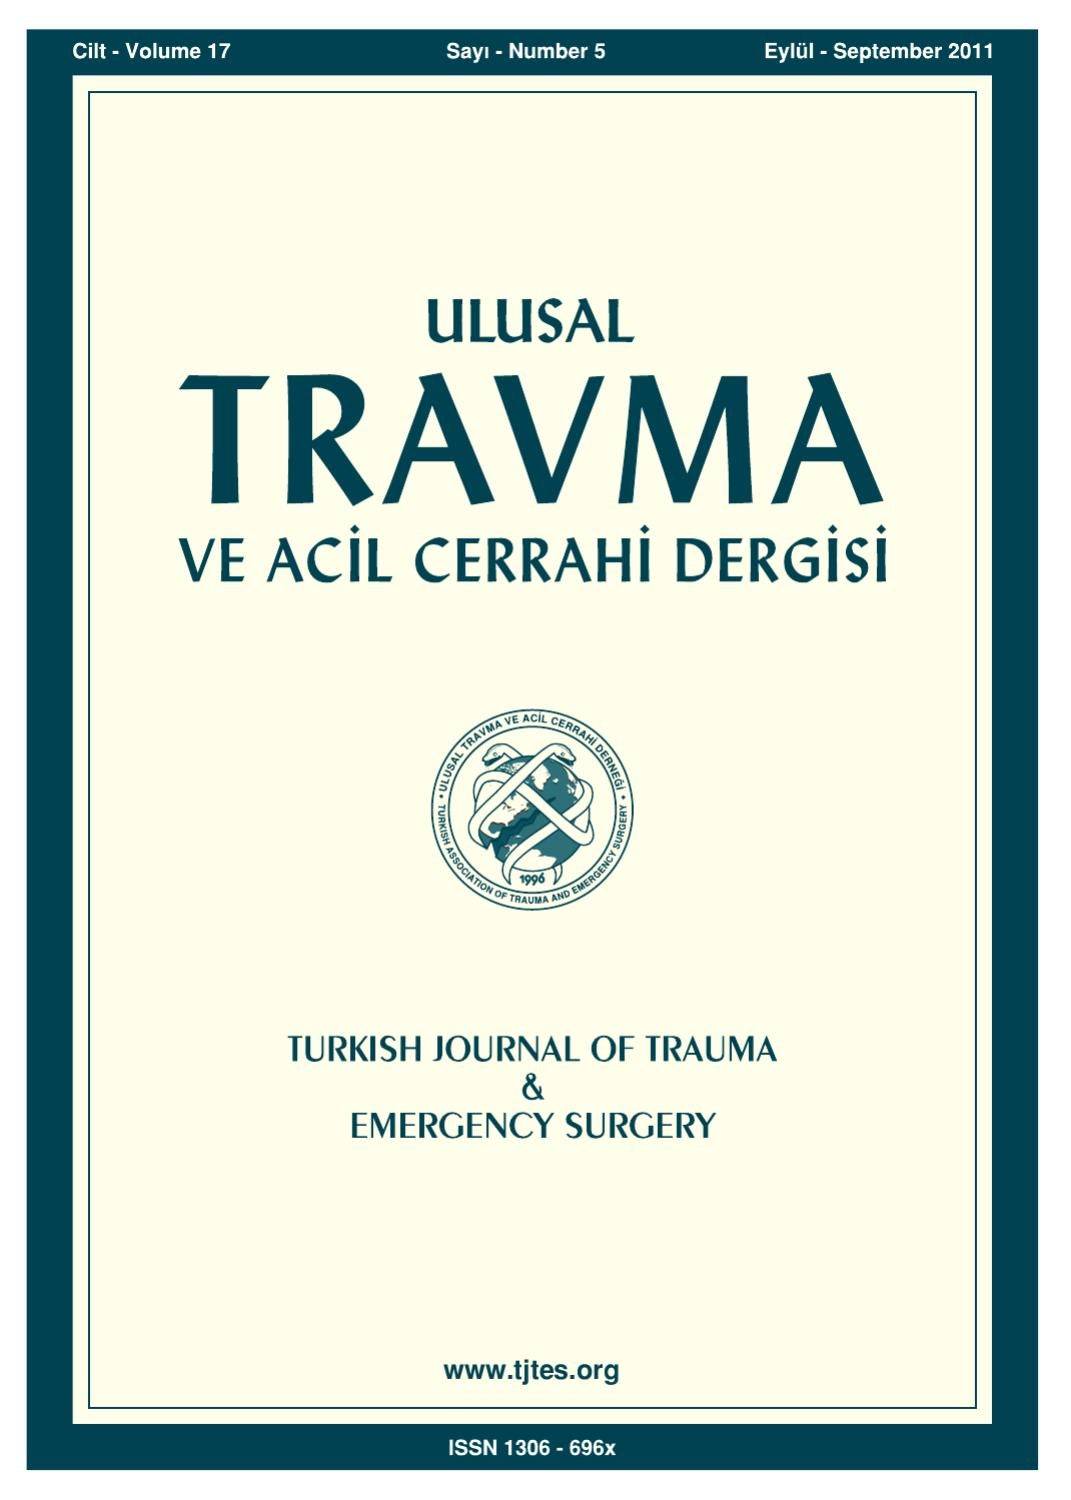 Travma 2011 5 By Karepublishing Issuu